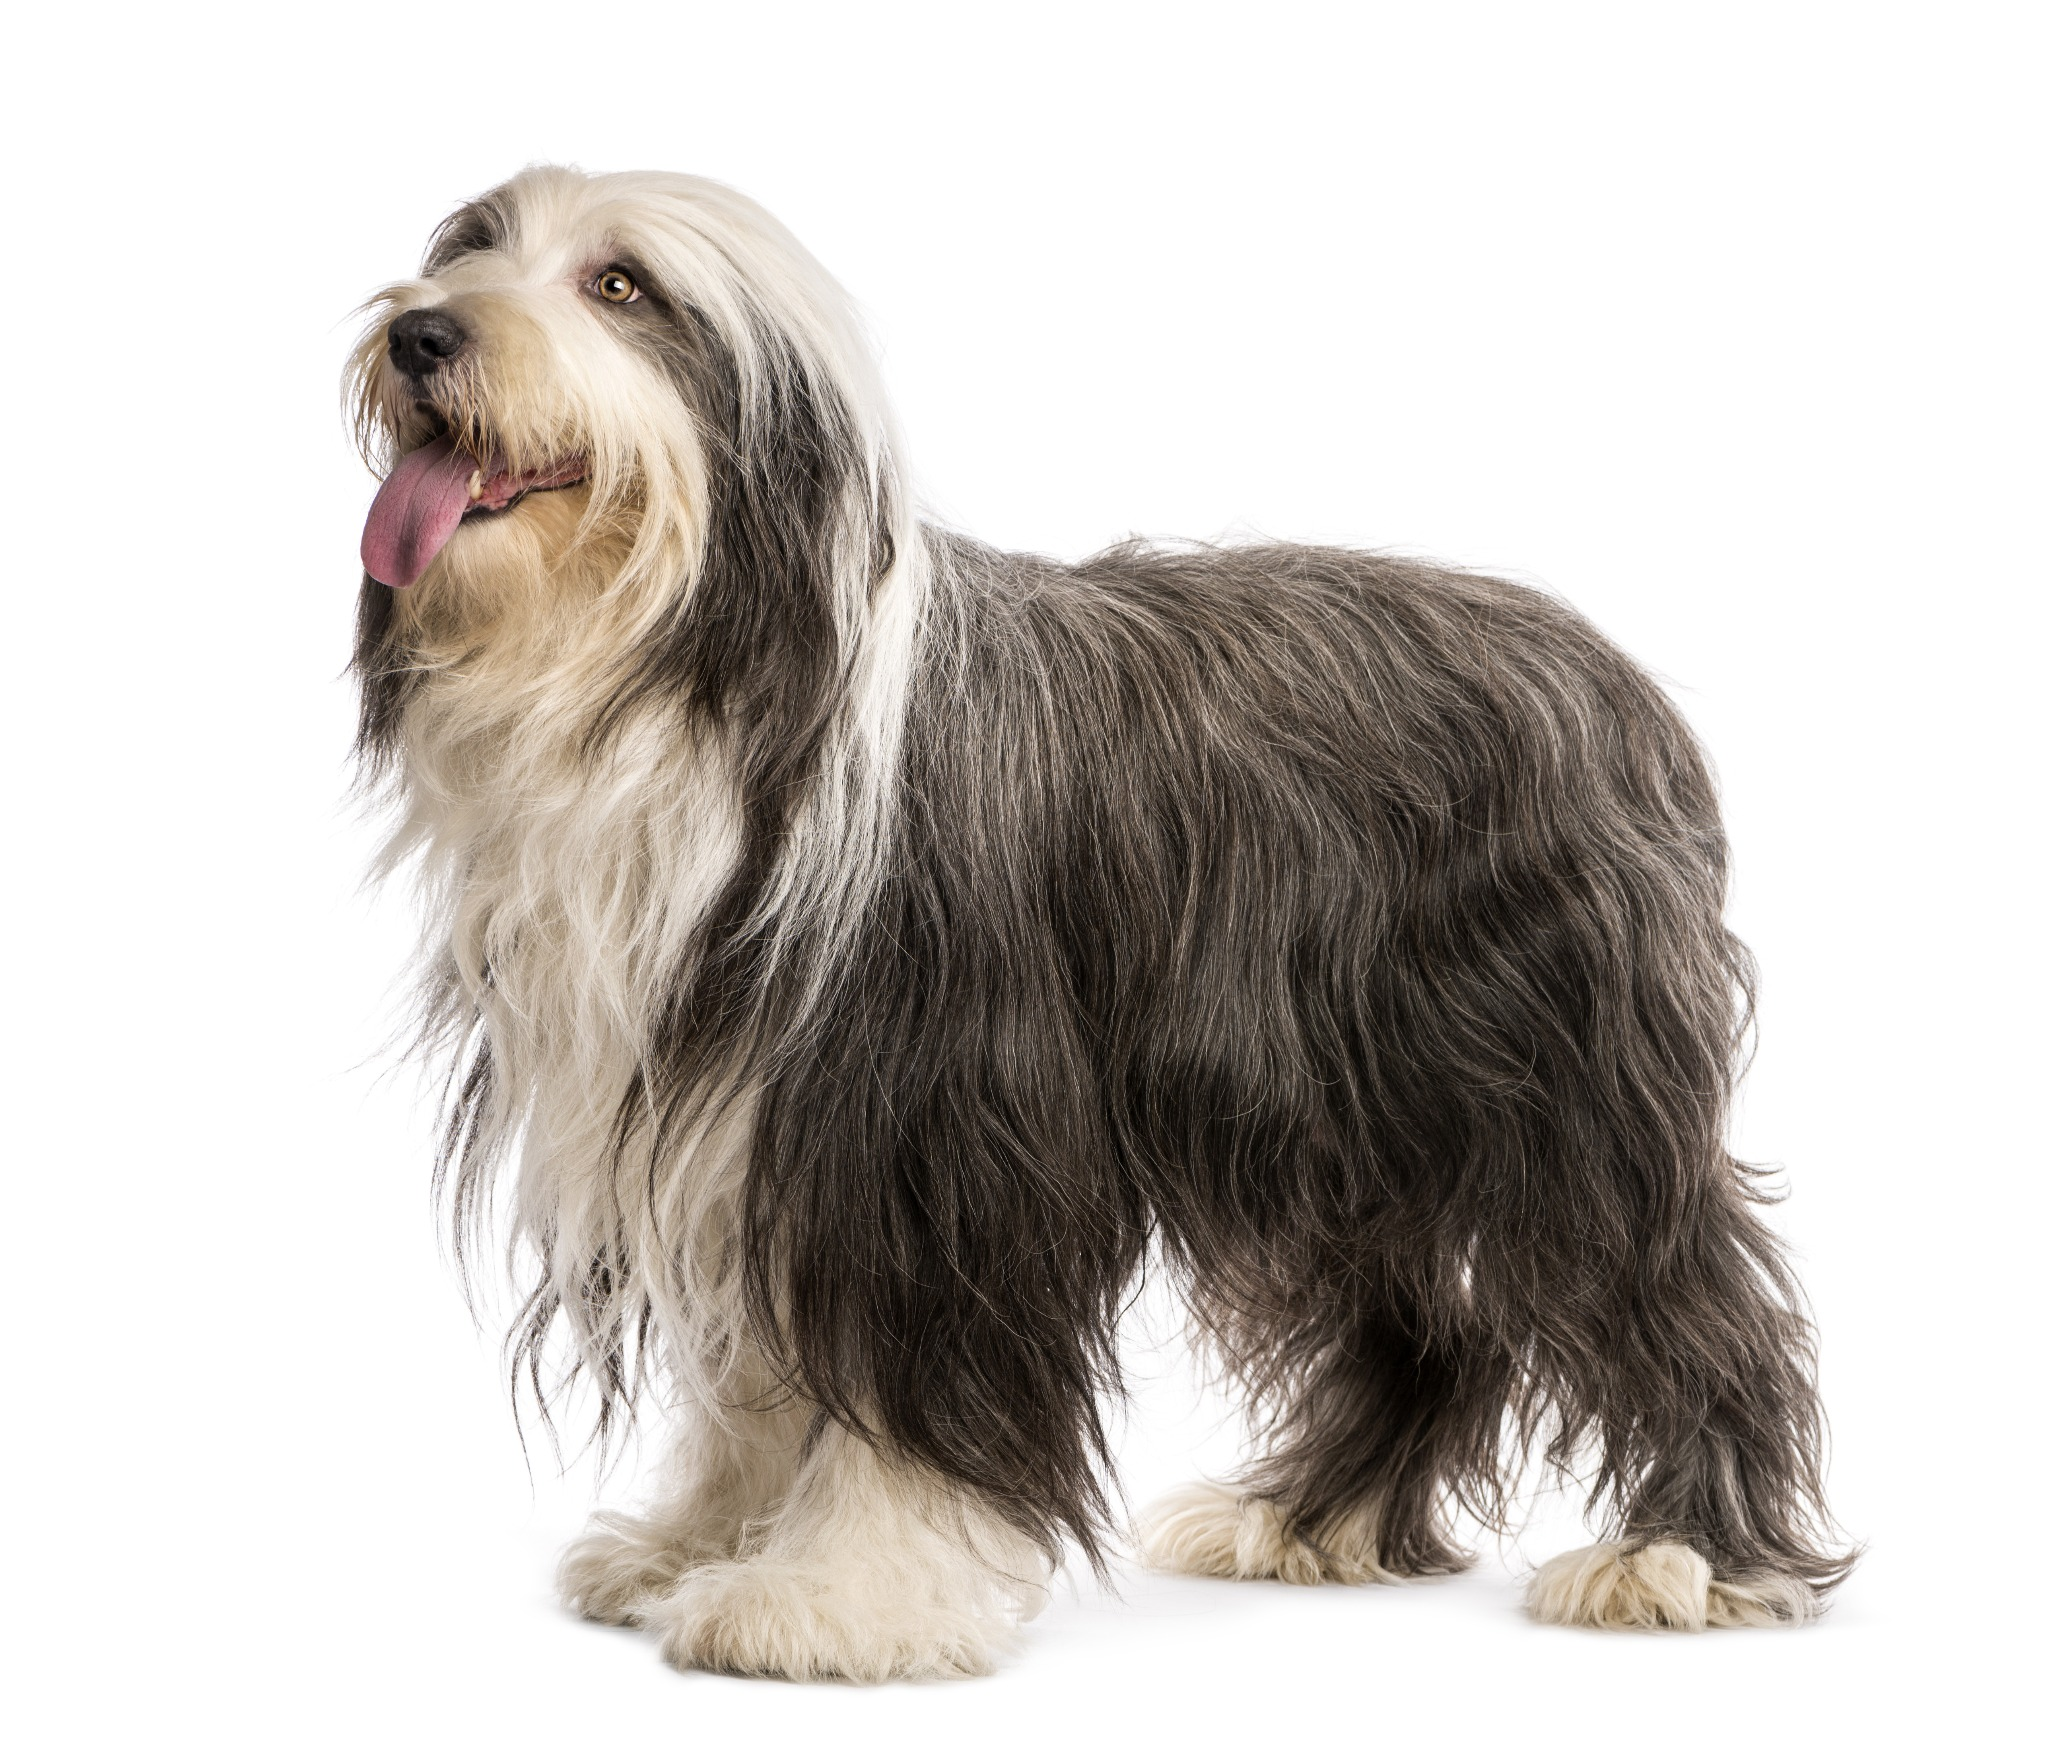 A portrait of a Bearded Collie. A Bearded Collie is a Scottish Dog breed